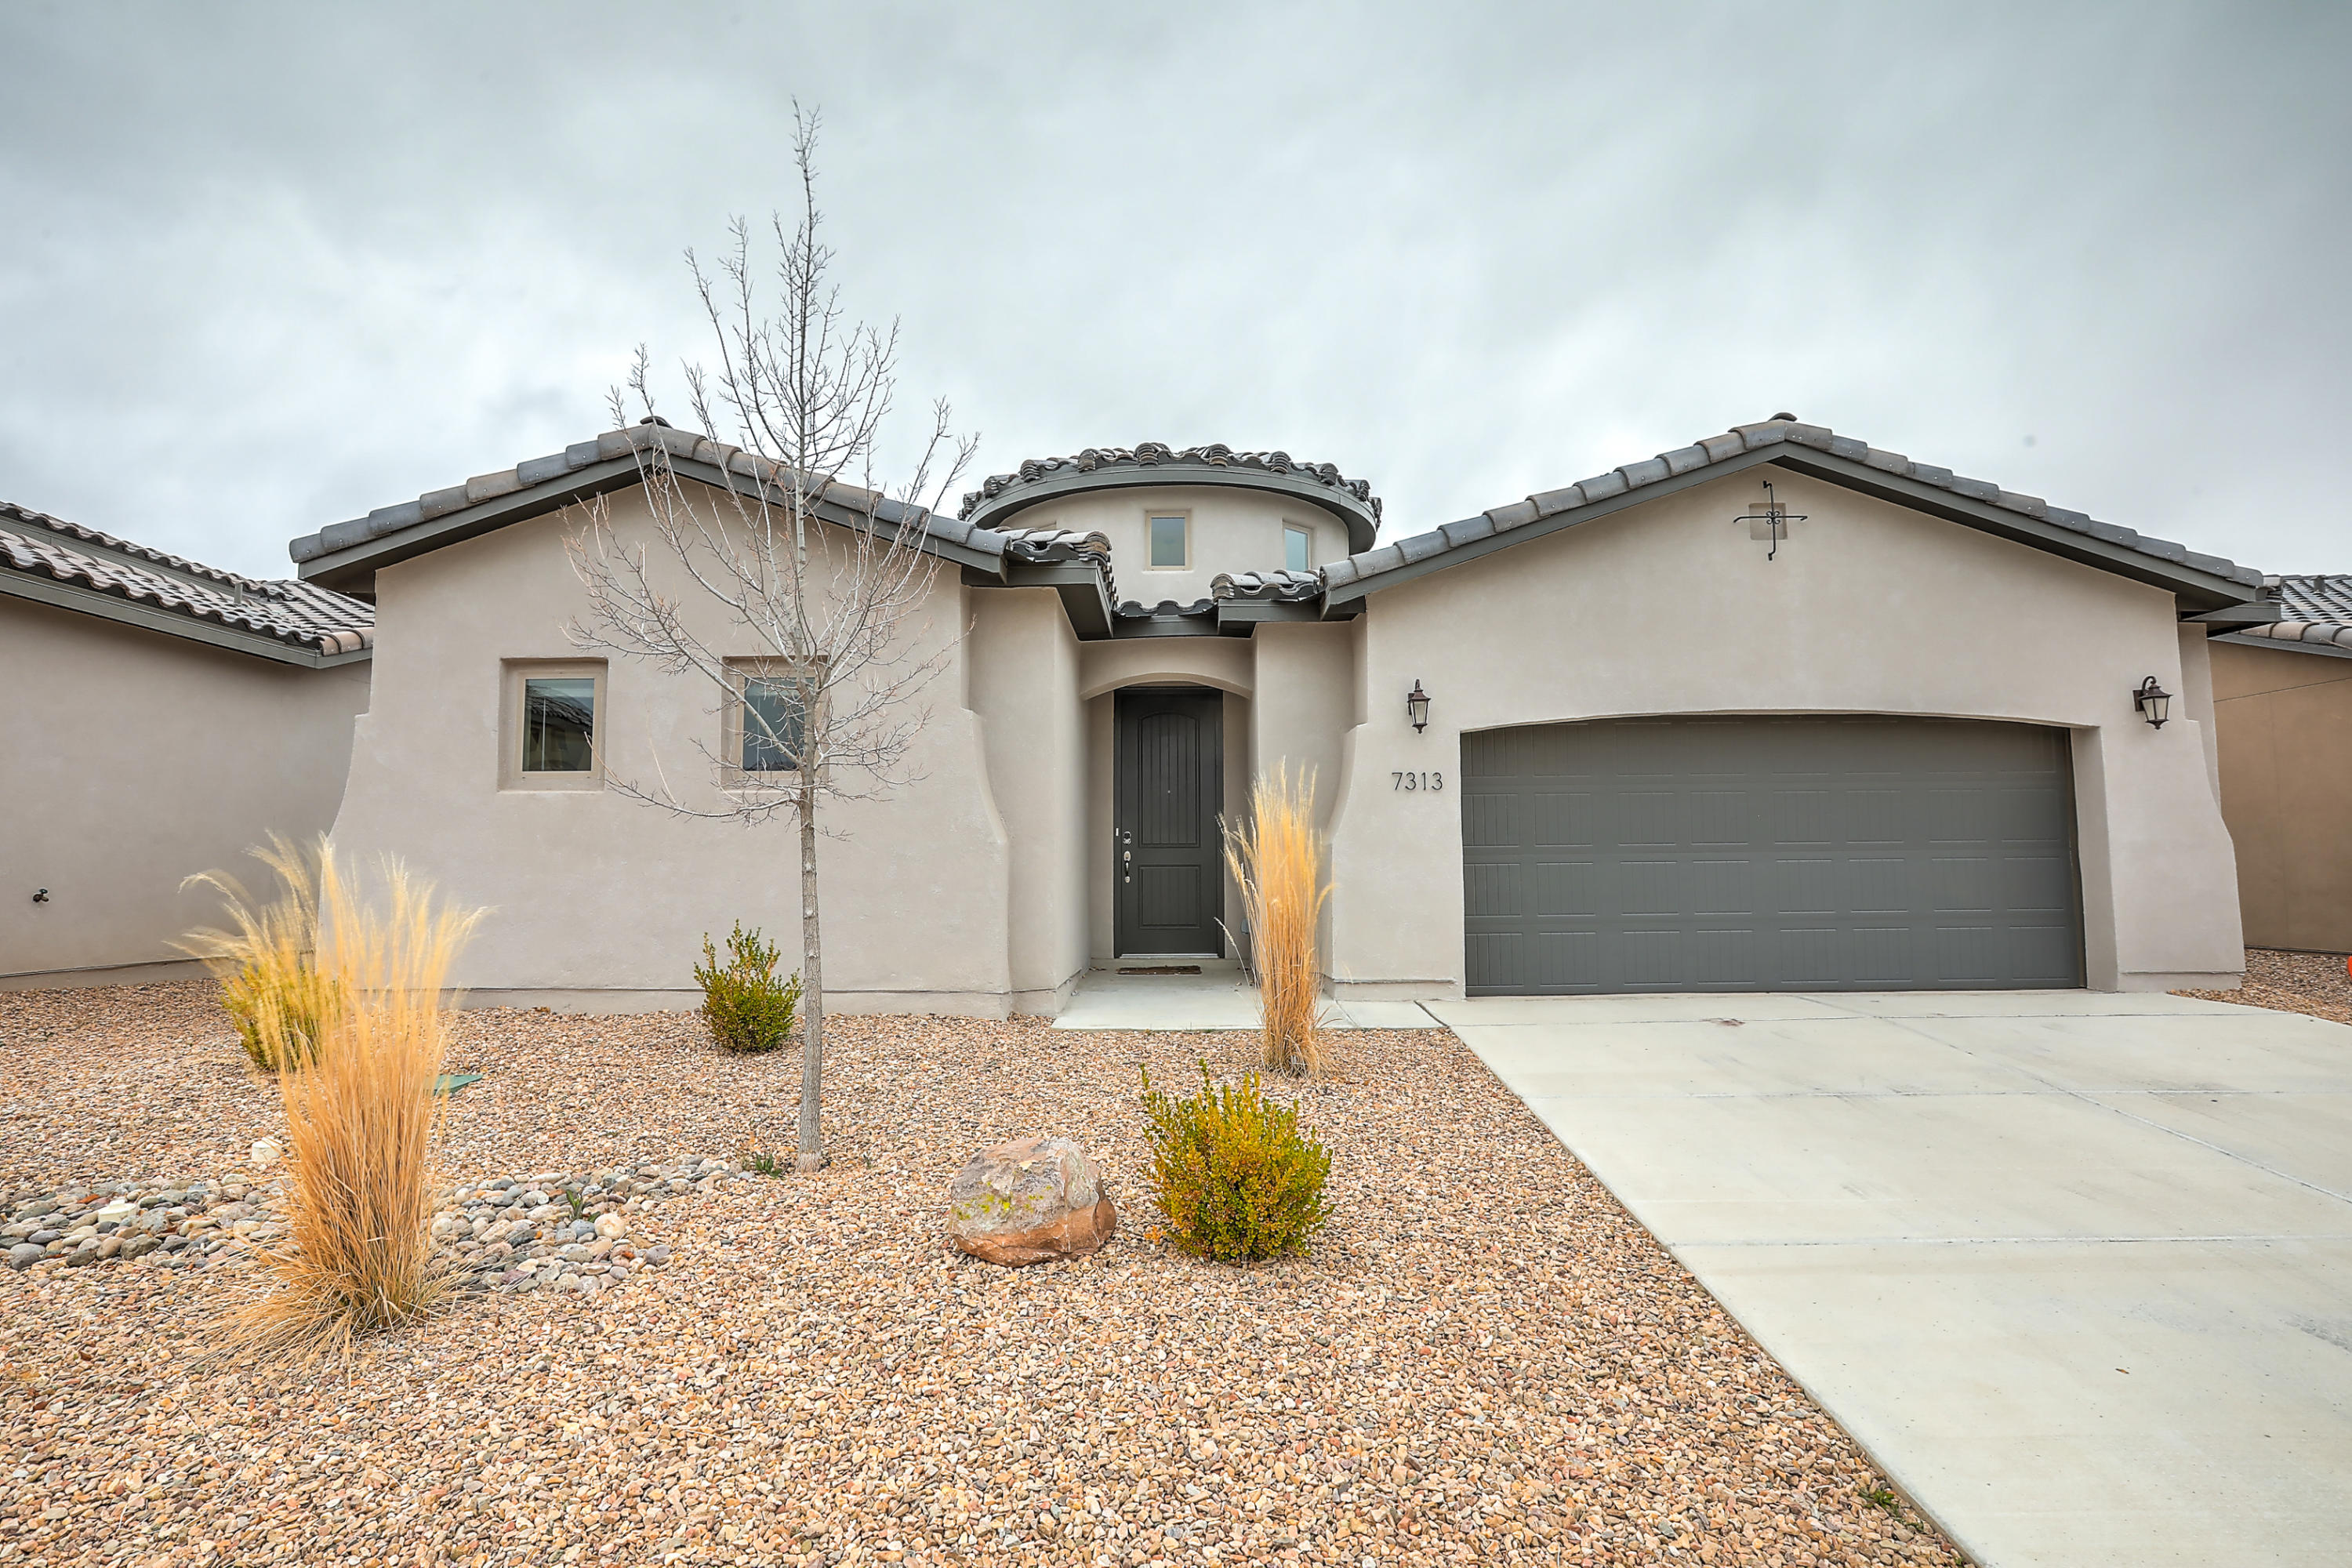 Newer Abrazo home with over $30,000 in upgrades. One story three bedrooms plus an office, two full bathrooms plus a guest bath. Gas fireplace, granite countertops, stainless steel appliances. Fridge, washer, and dryer convey with the purchase. Very convenient location close to Whole Foods, Albuquerque Academy, restaurants, parks, and easy access to I25 yet quiet and classy neighborhood.